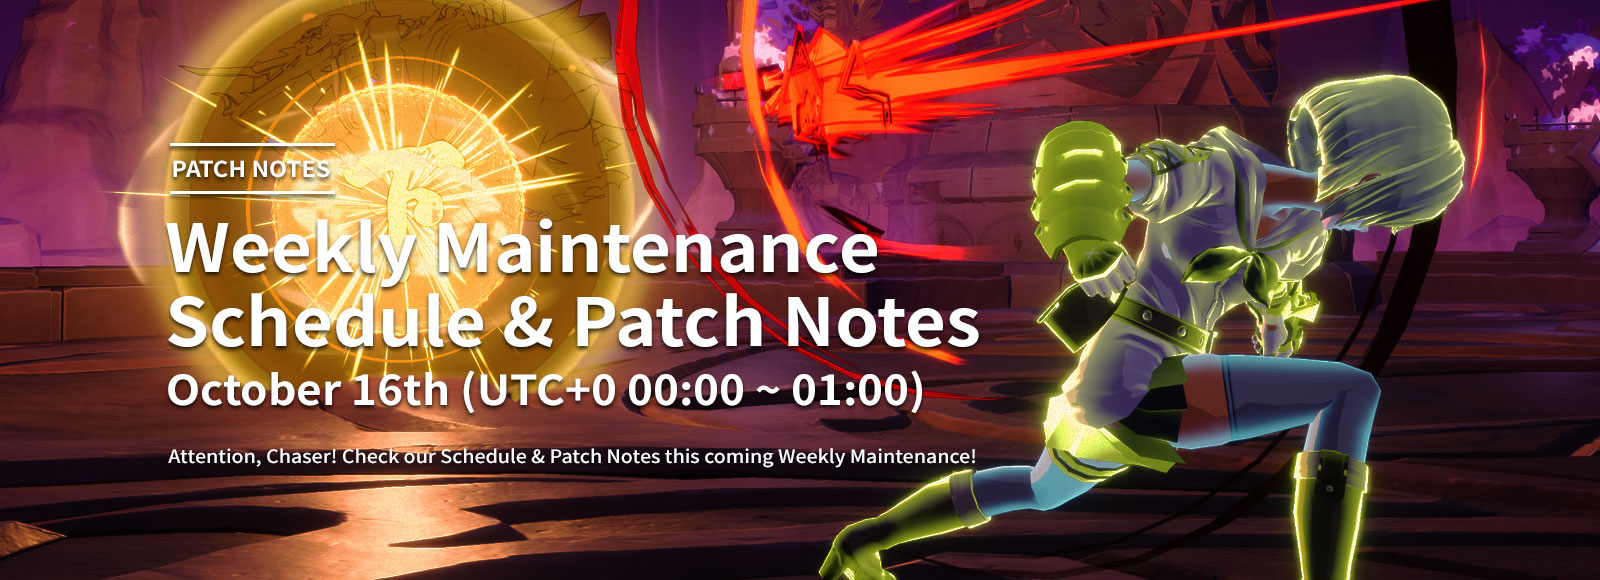 October 16th Weekly Maintenance Schedule & Patch Notes